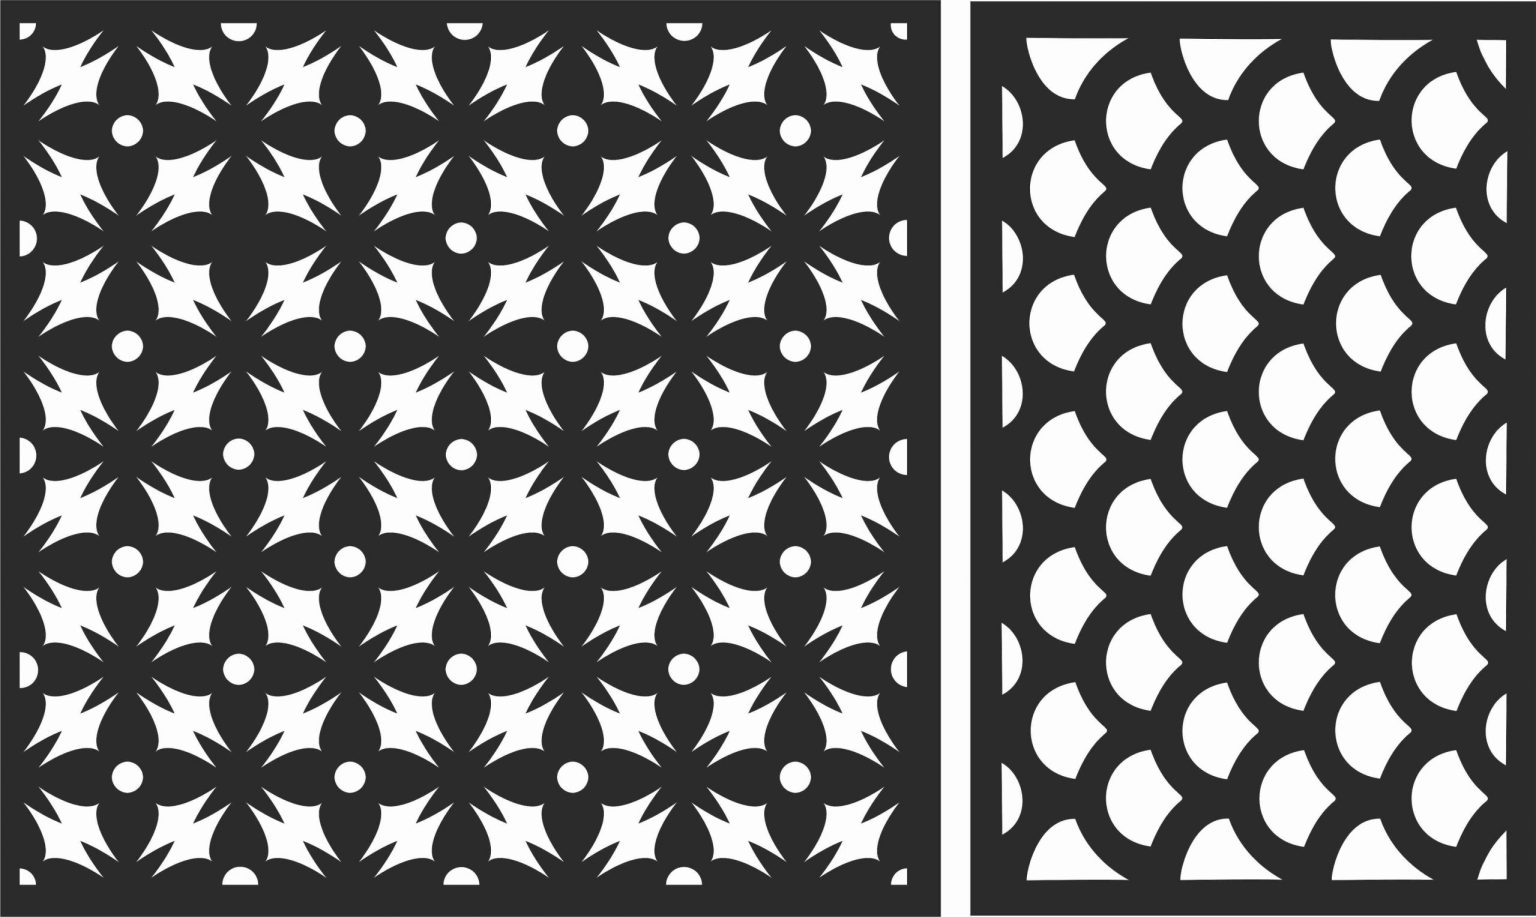 Decorative Screen Patterns For Laser Cutting 114 Free DXF File